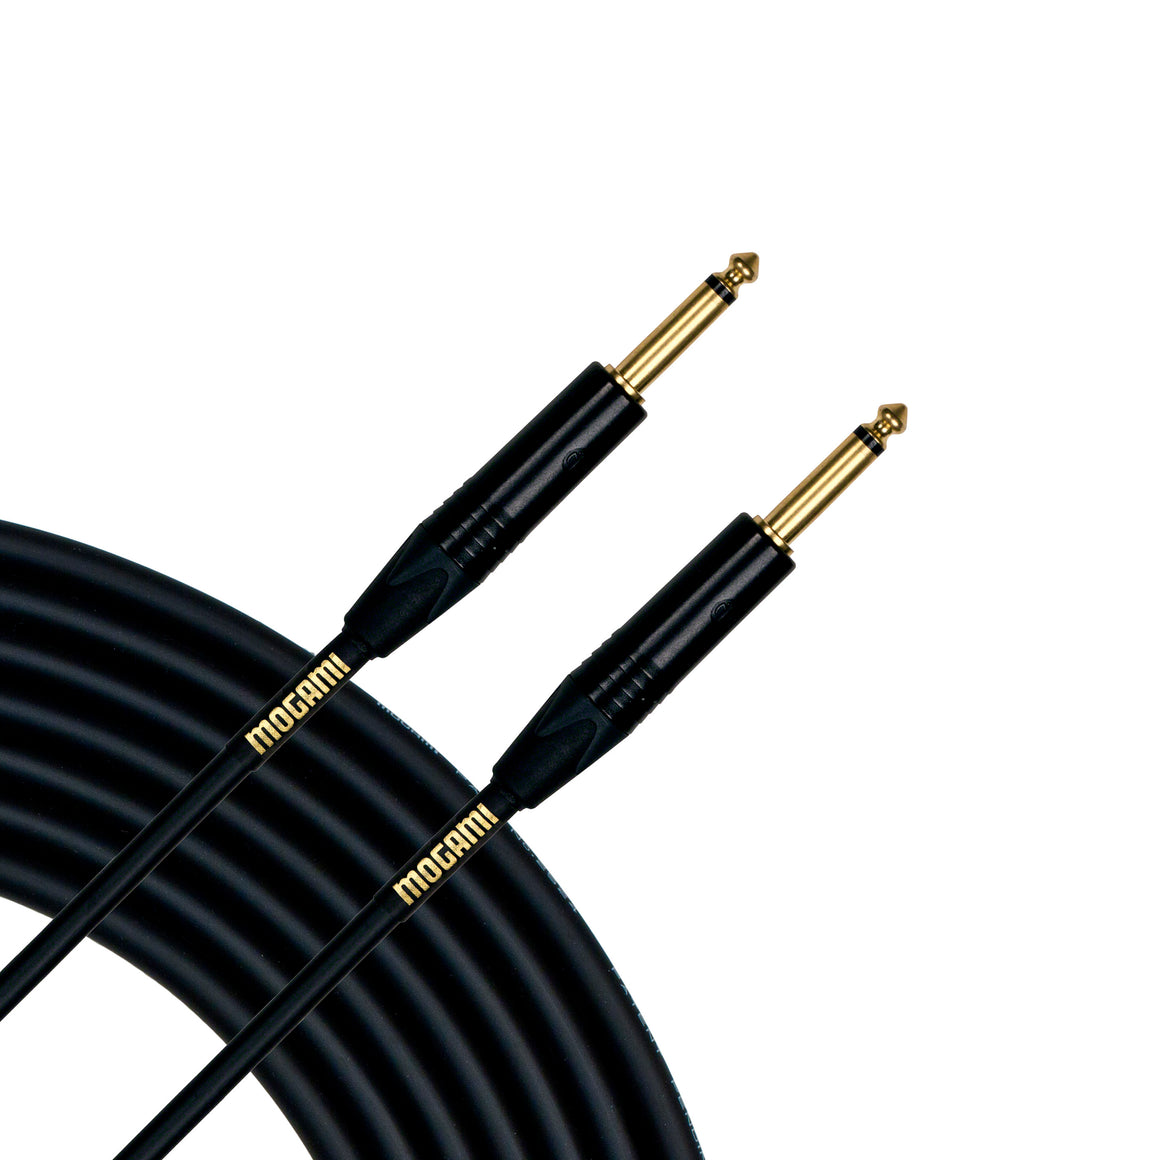 "Mogami Gold Instrument Cable 18, 1/4"" TS, 18' length, Straight - Straight"